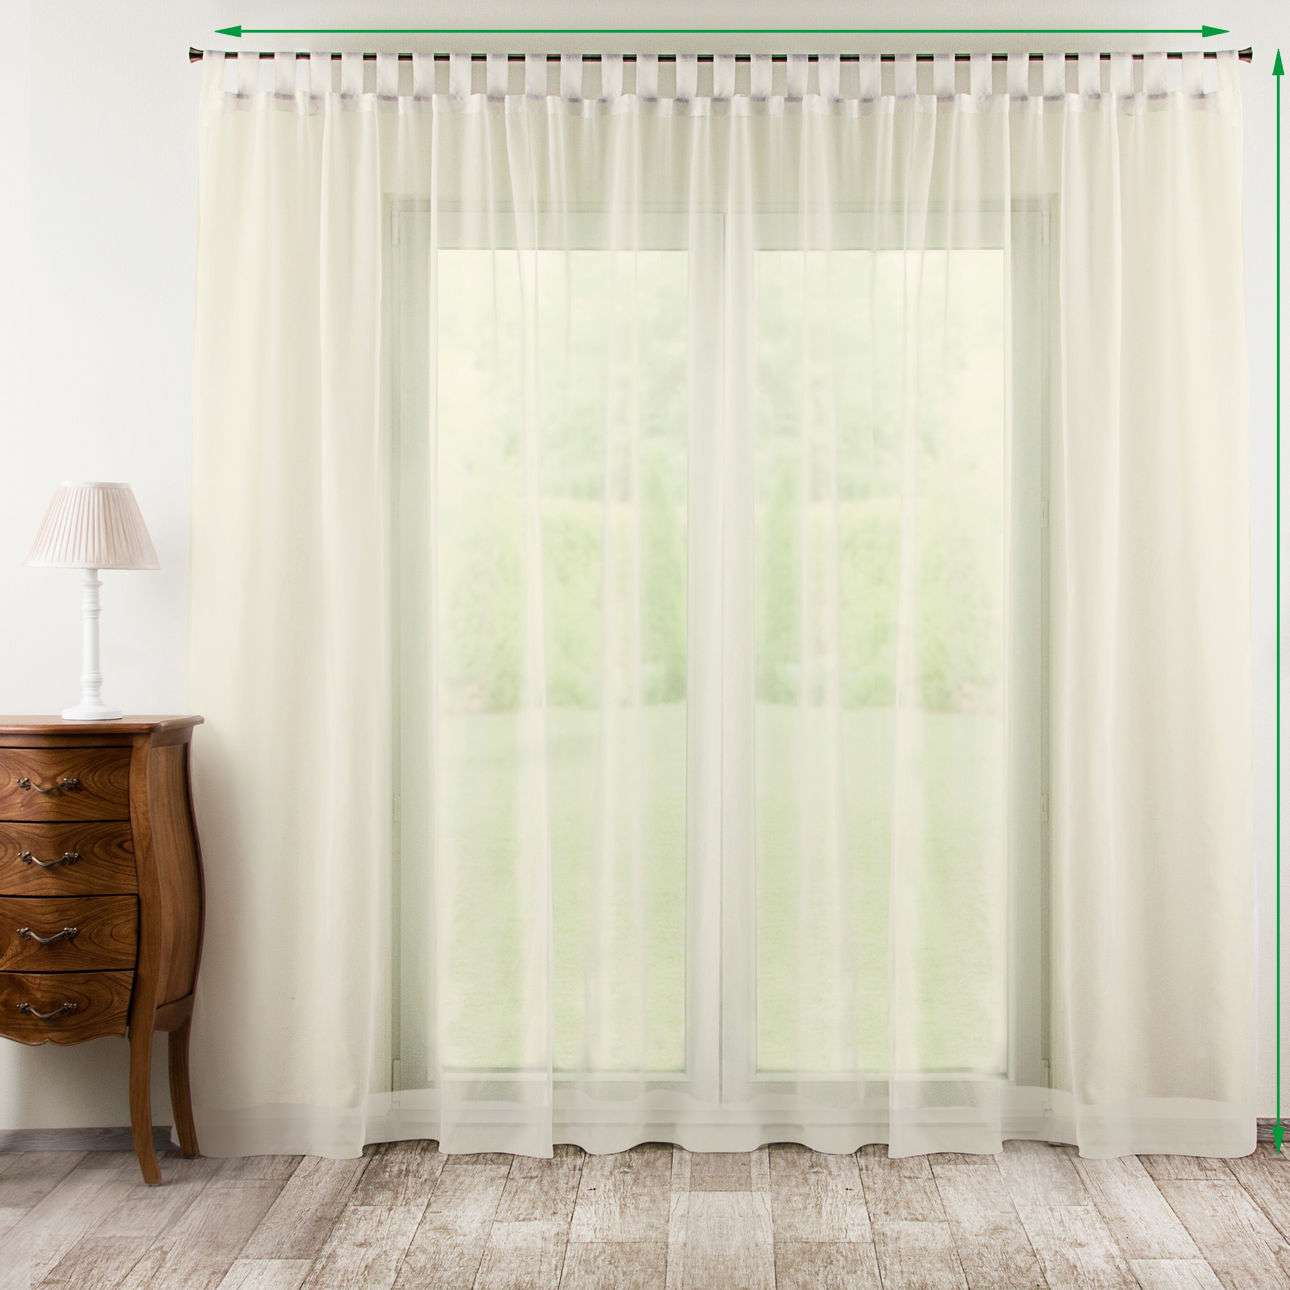 Tab top voile/net curtains in collection Voile, fabric: 900-01